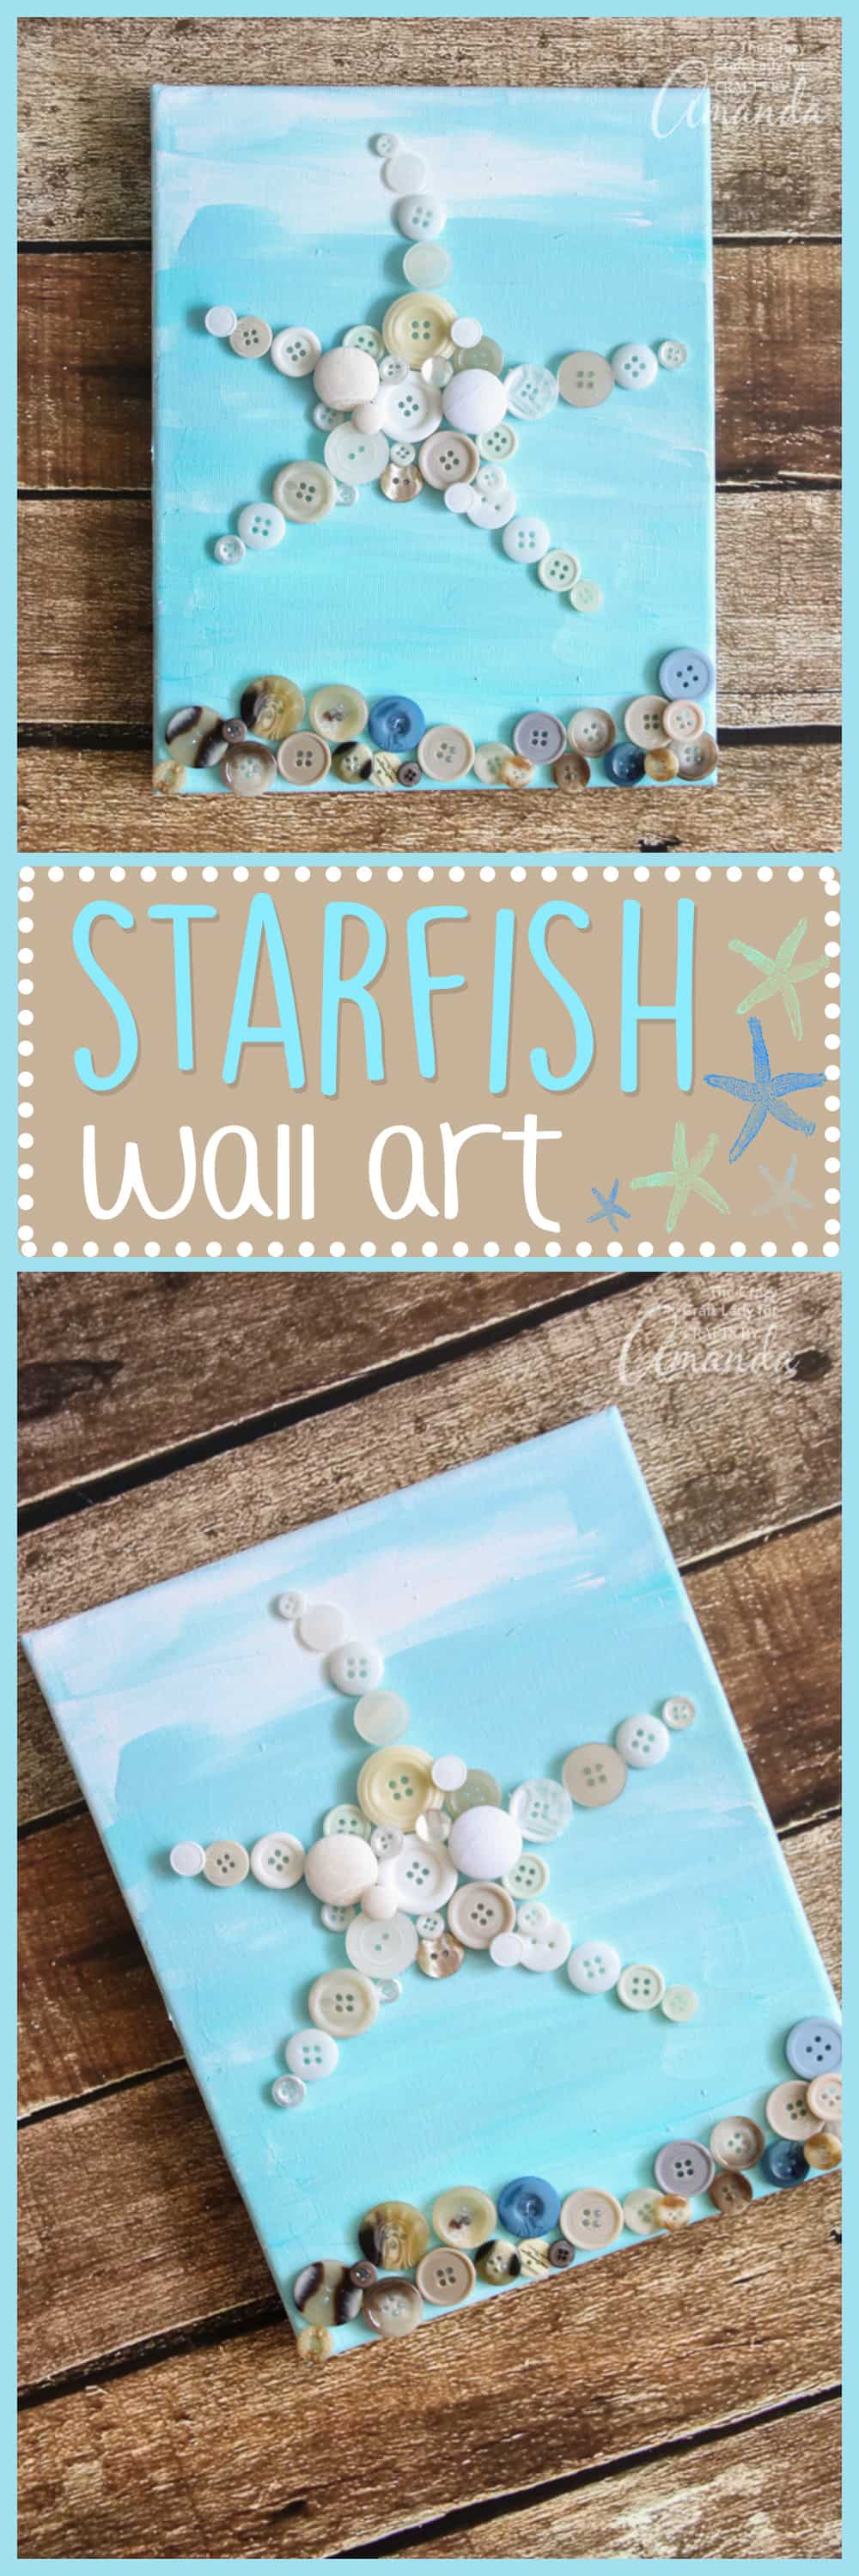 Make this simple starfish wall art with buttons and a canvas. This coastal craft is a great way to upcycle and reuse old buttons.